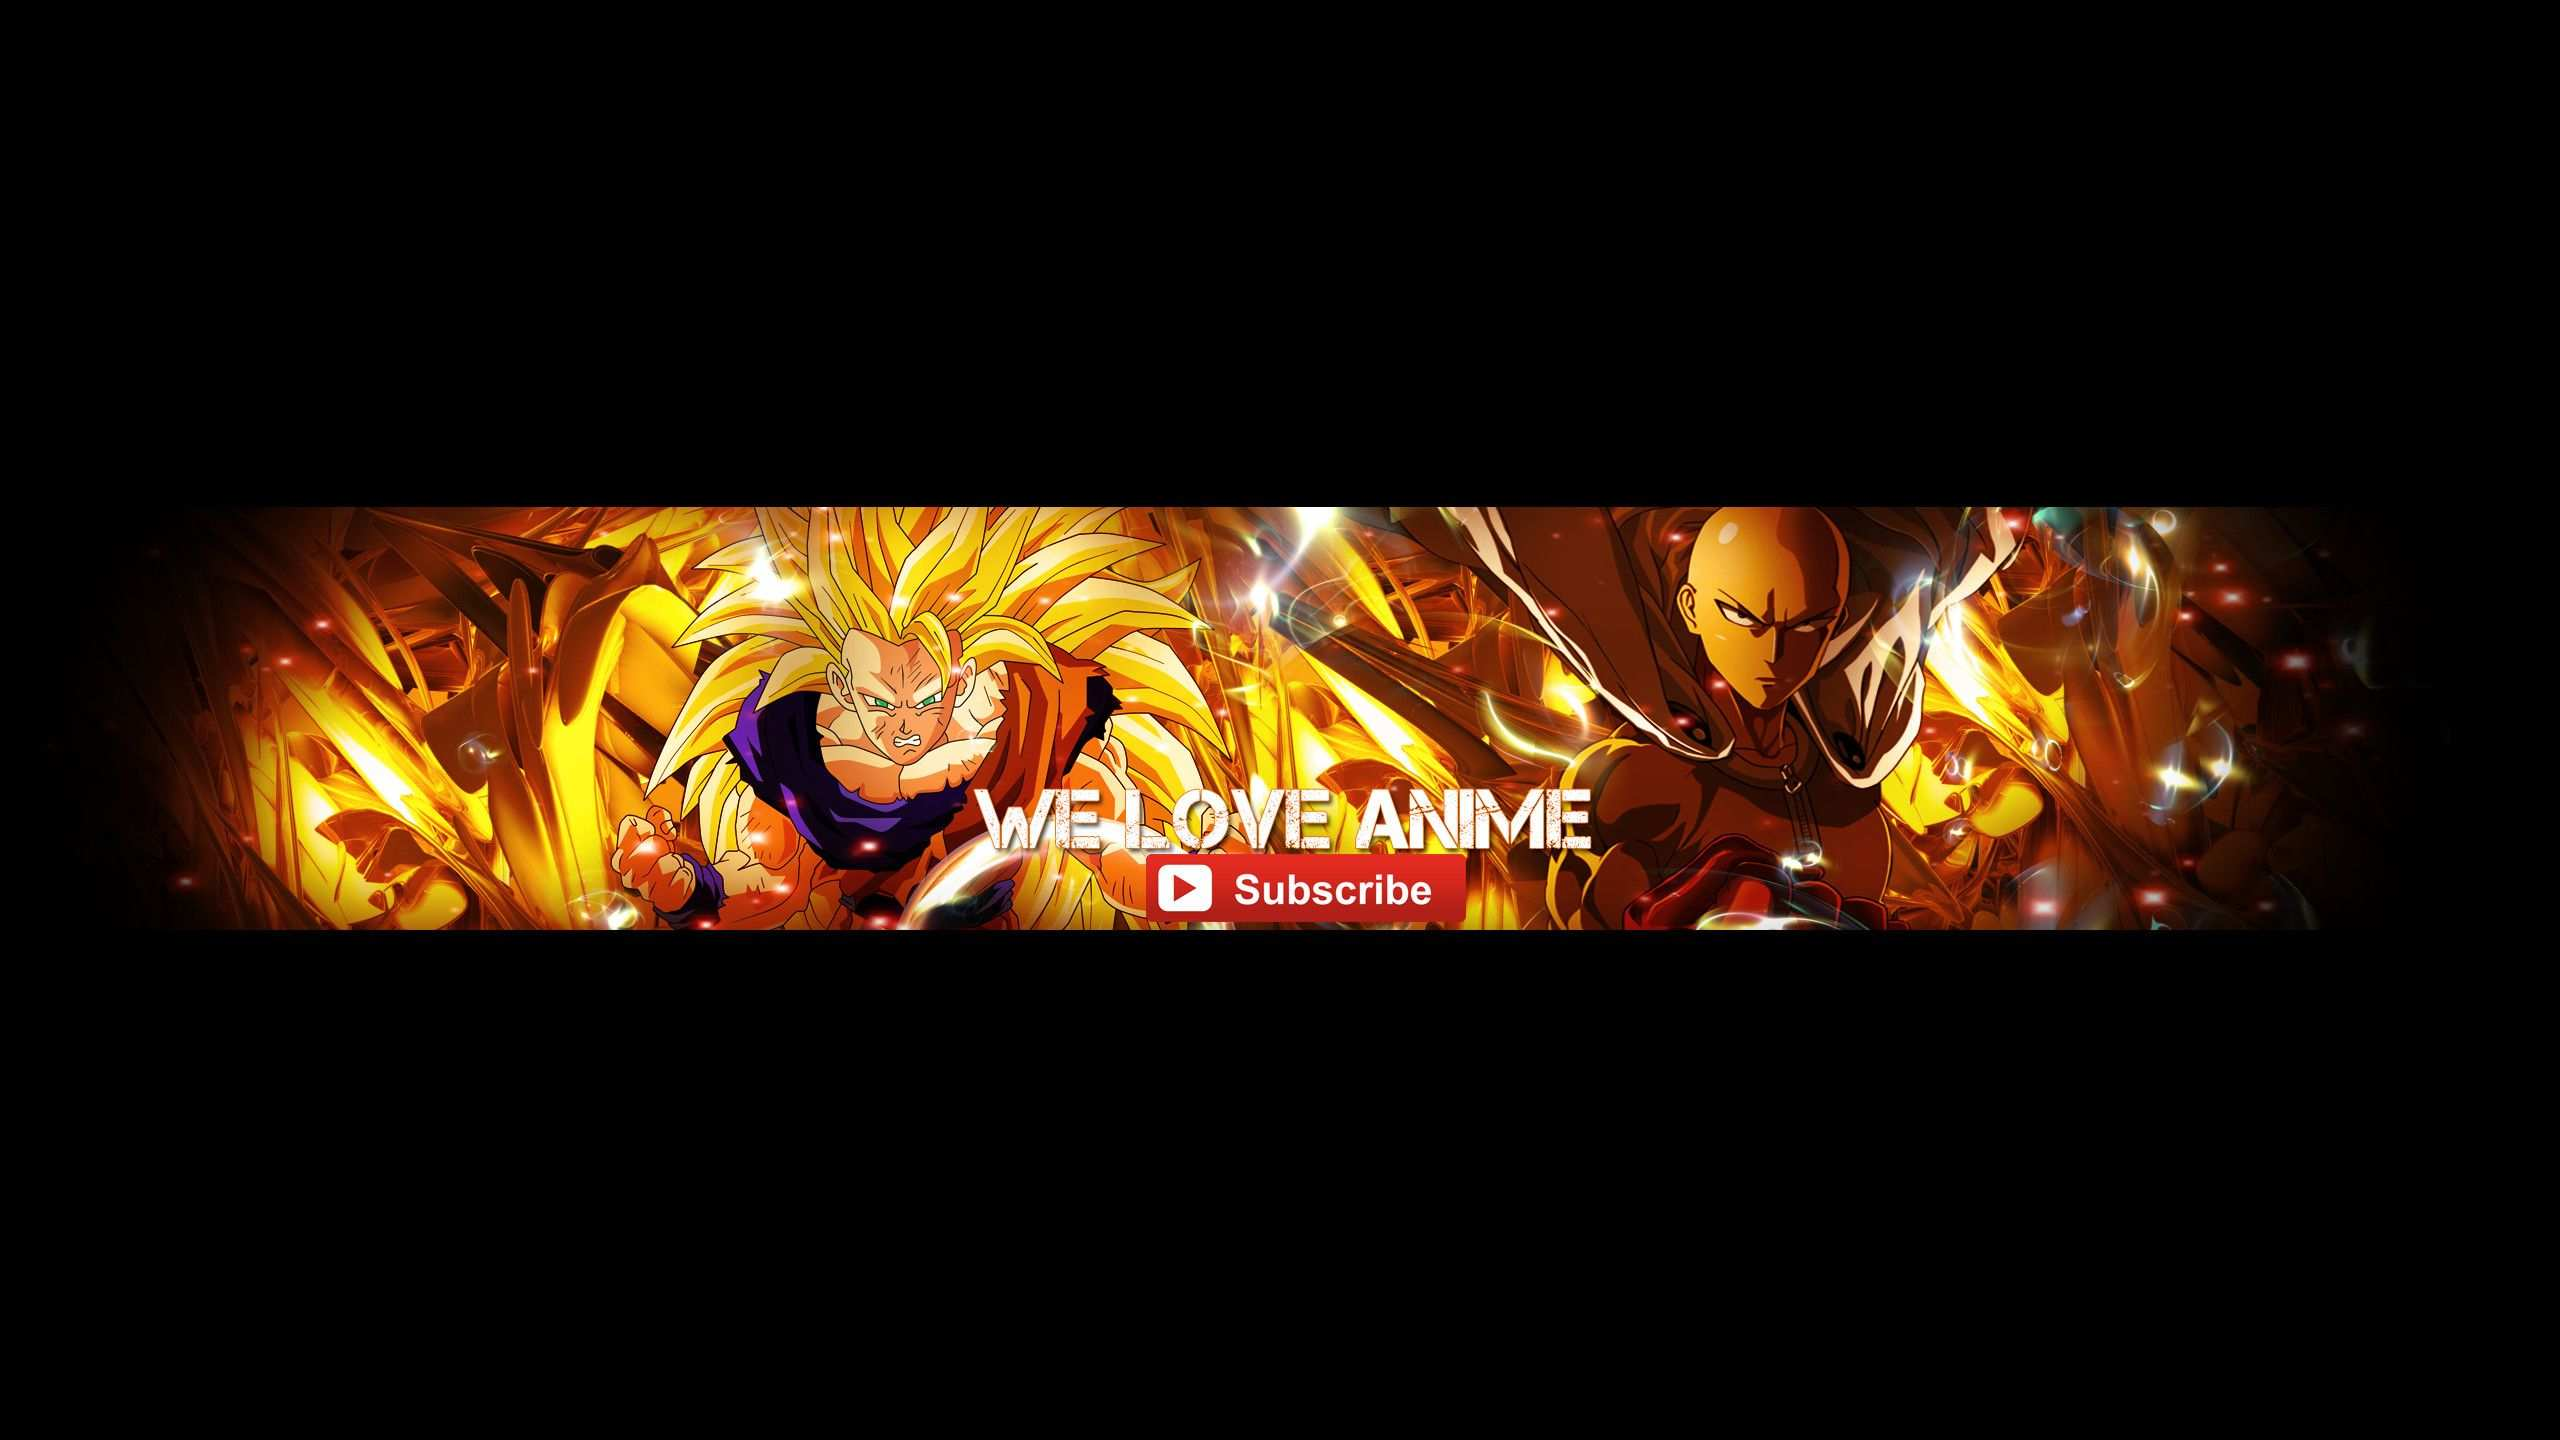 2560x1440 Anime Youtube Banner By Scarletsnowx Anime Youtube